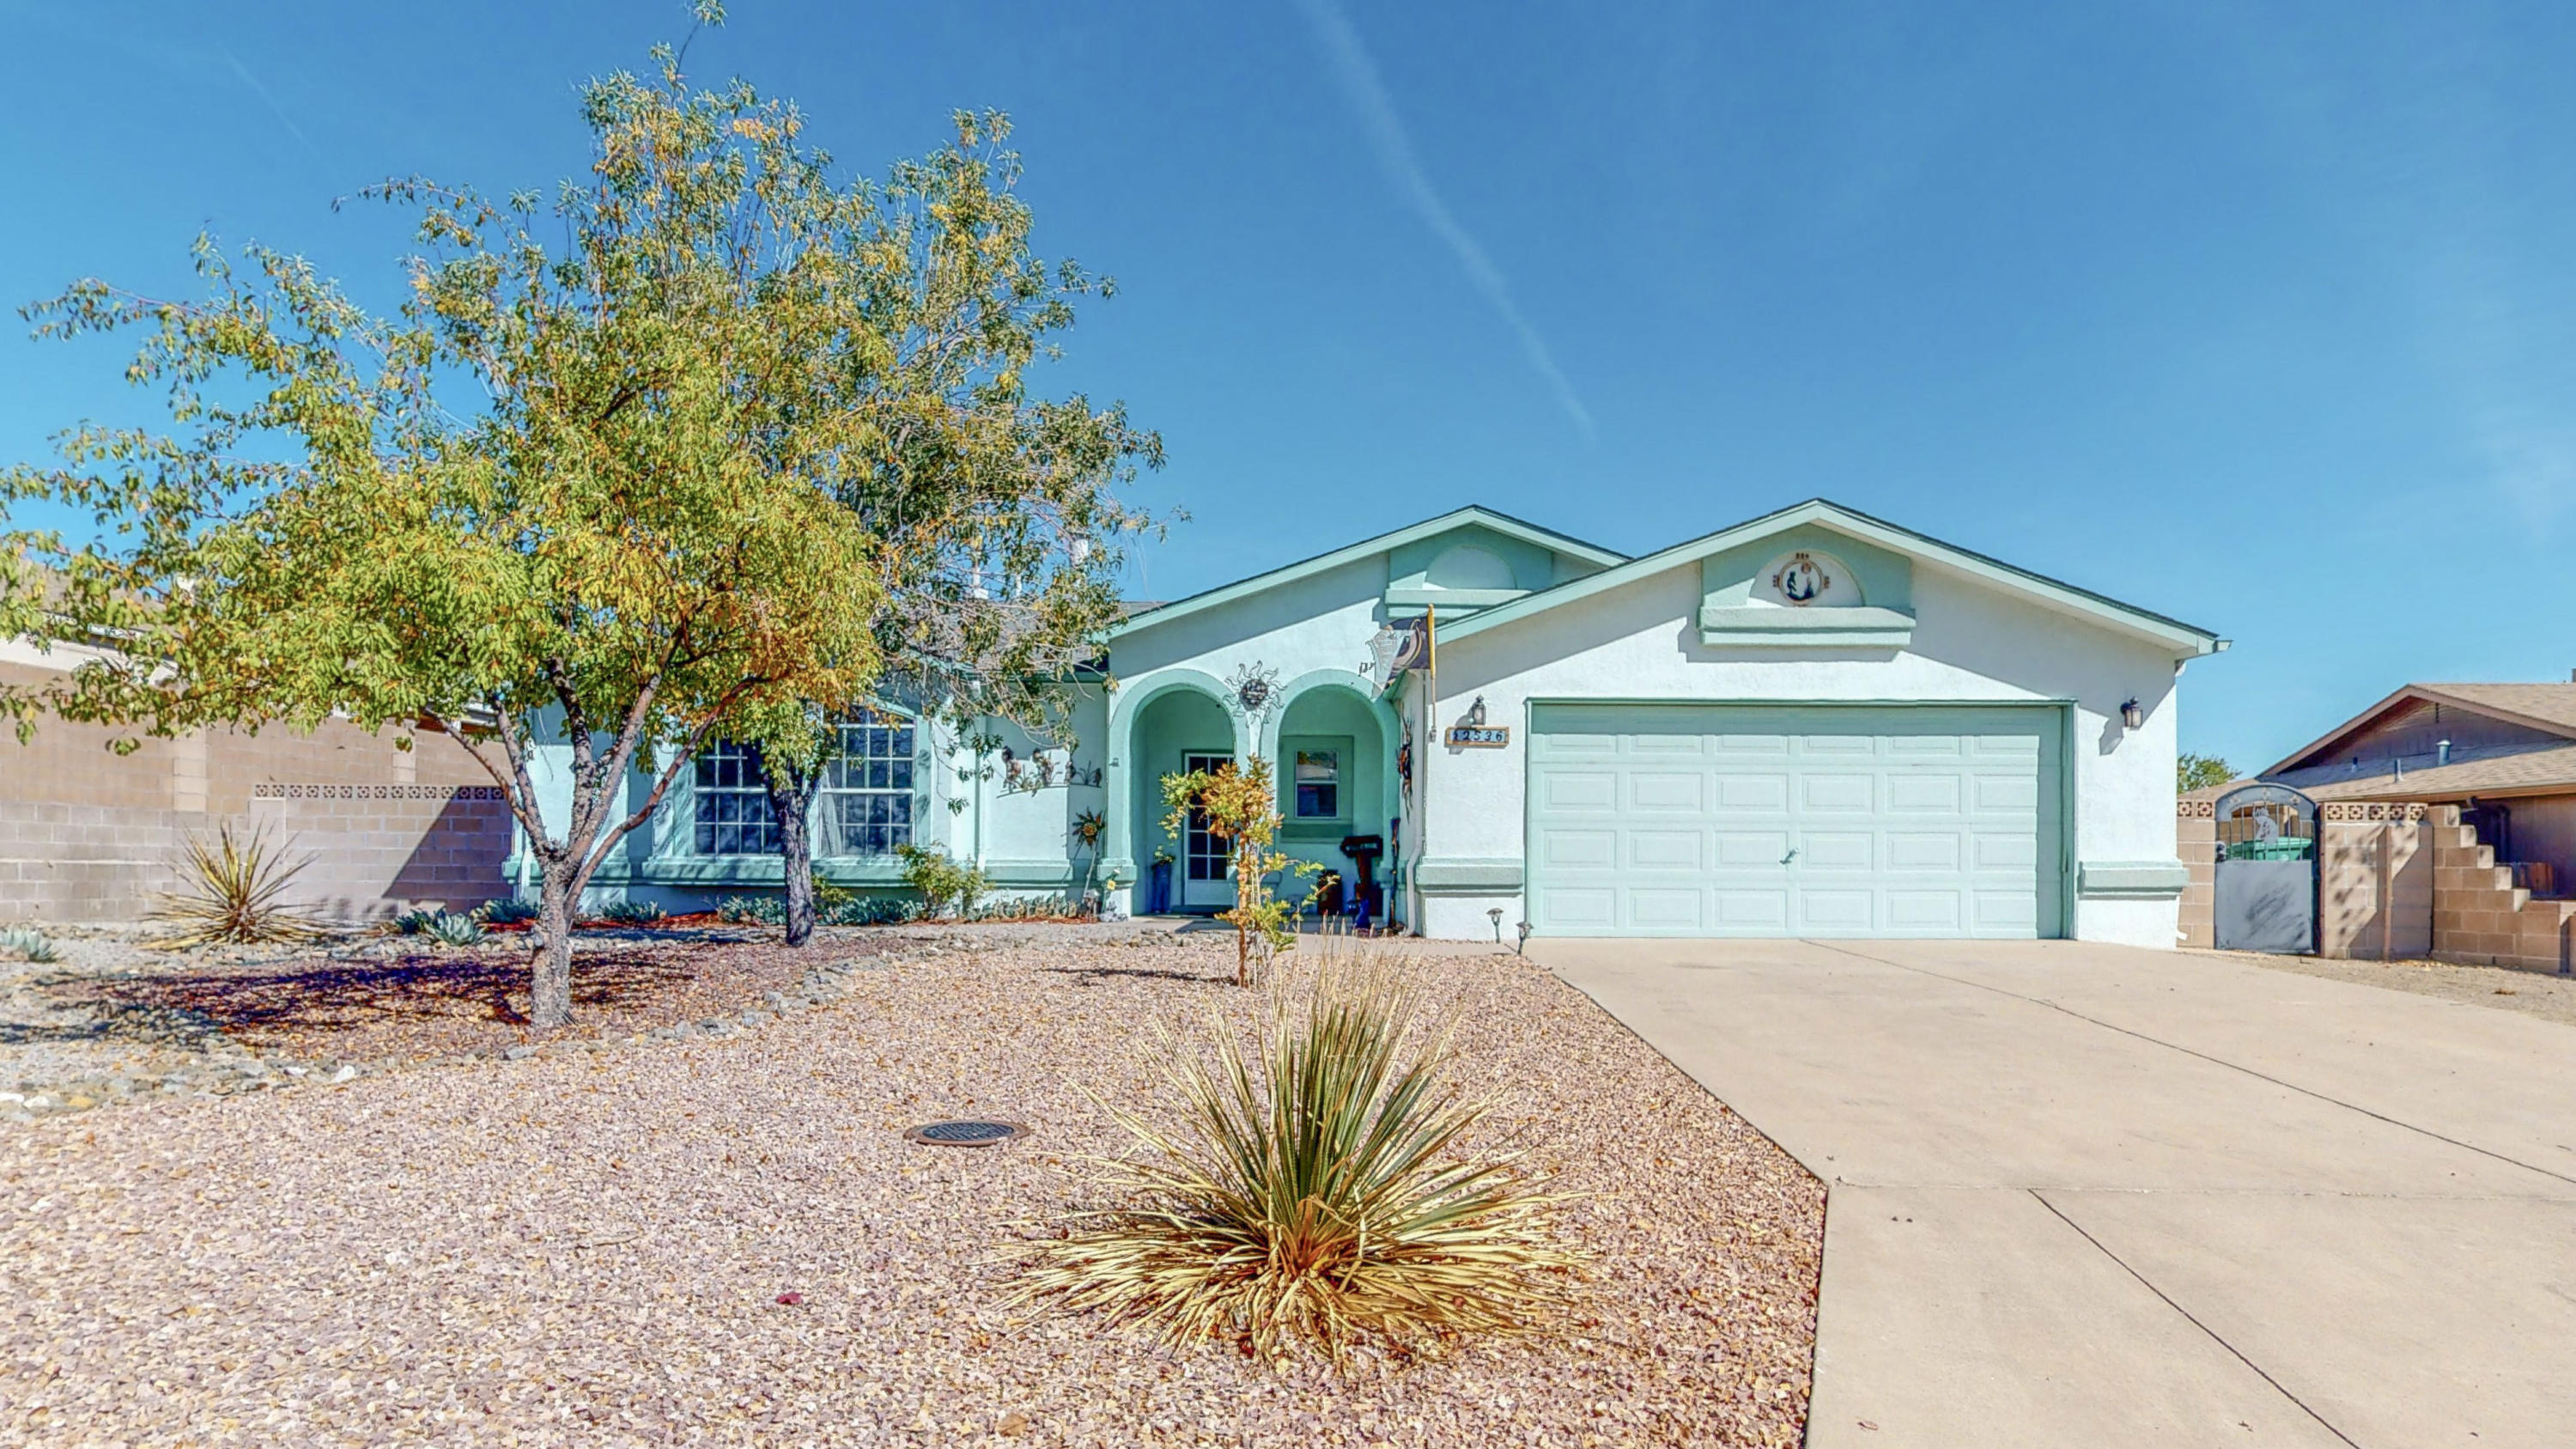 Welcome to this fantastic Pueblo style, single-story home that has million dollar views from the backyard! This very popular floor plan has been remodeled and includes new flooring, security system, video cameras, newly redone master bath and top of the line mastercool.  This home features an irrigation system with very low maintenance for the backyard. The Southwestern flair is all throughout the home and even features beautiful granite countertops! Now is your chance to make this home yours it is full of character and won't be available for long!